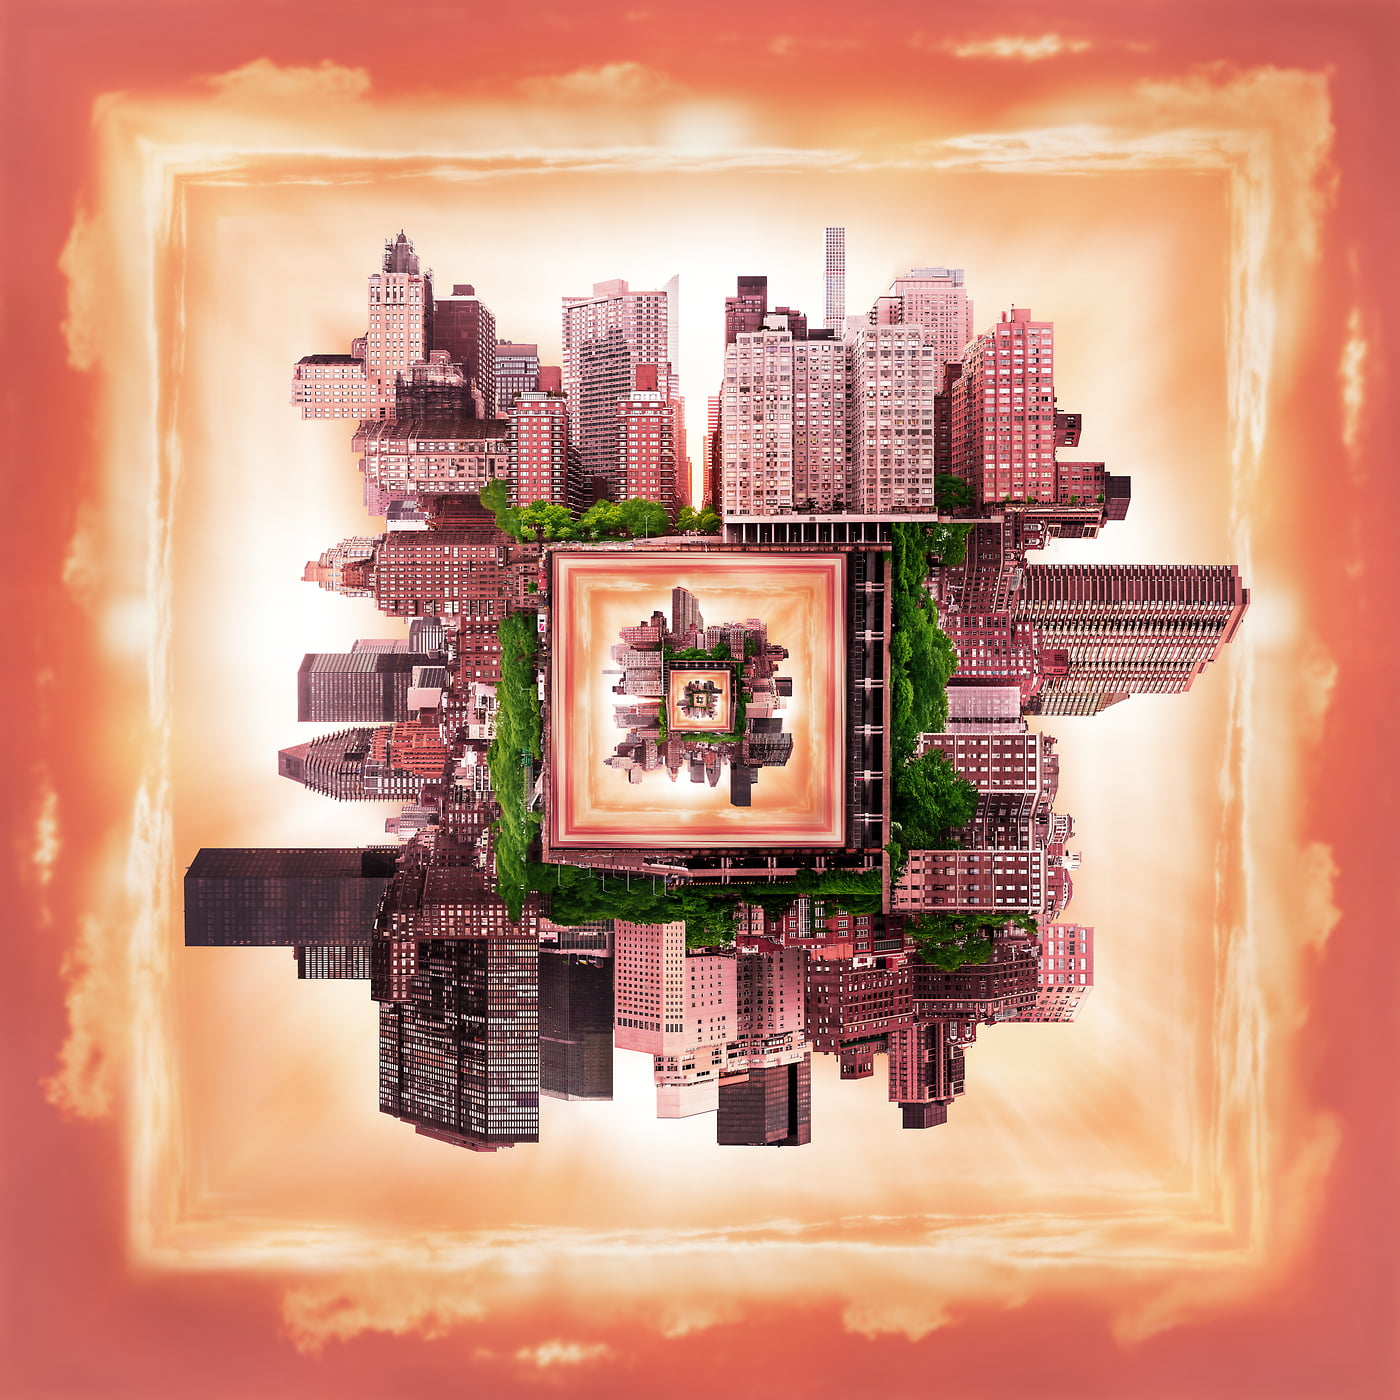 2,204 megapixels! A very high resolution, large-format abstract photo of a city in a square shape; fine art print created by Dan Piech in Midtown East, Manhattan, New York City